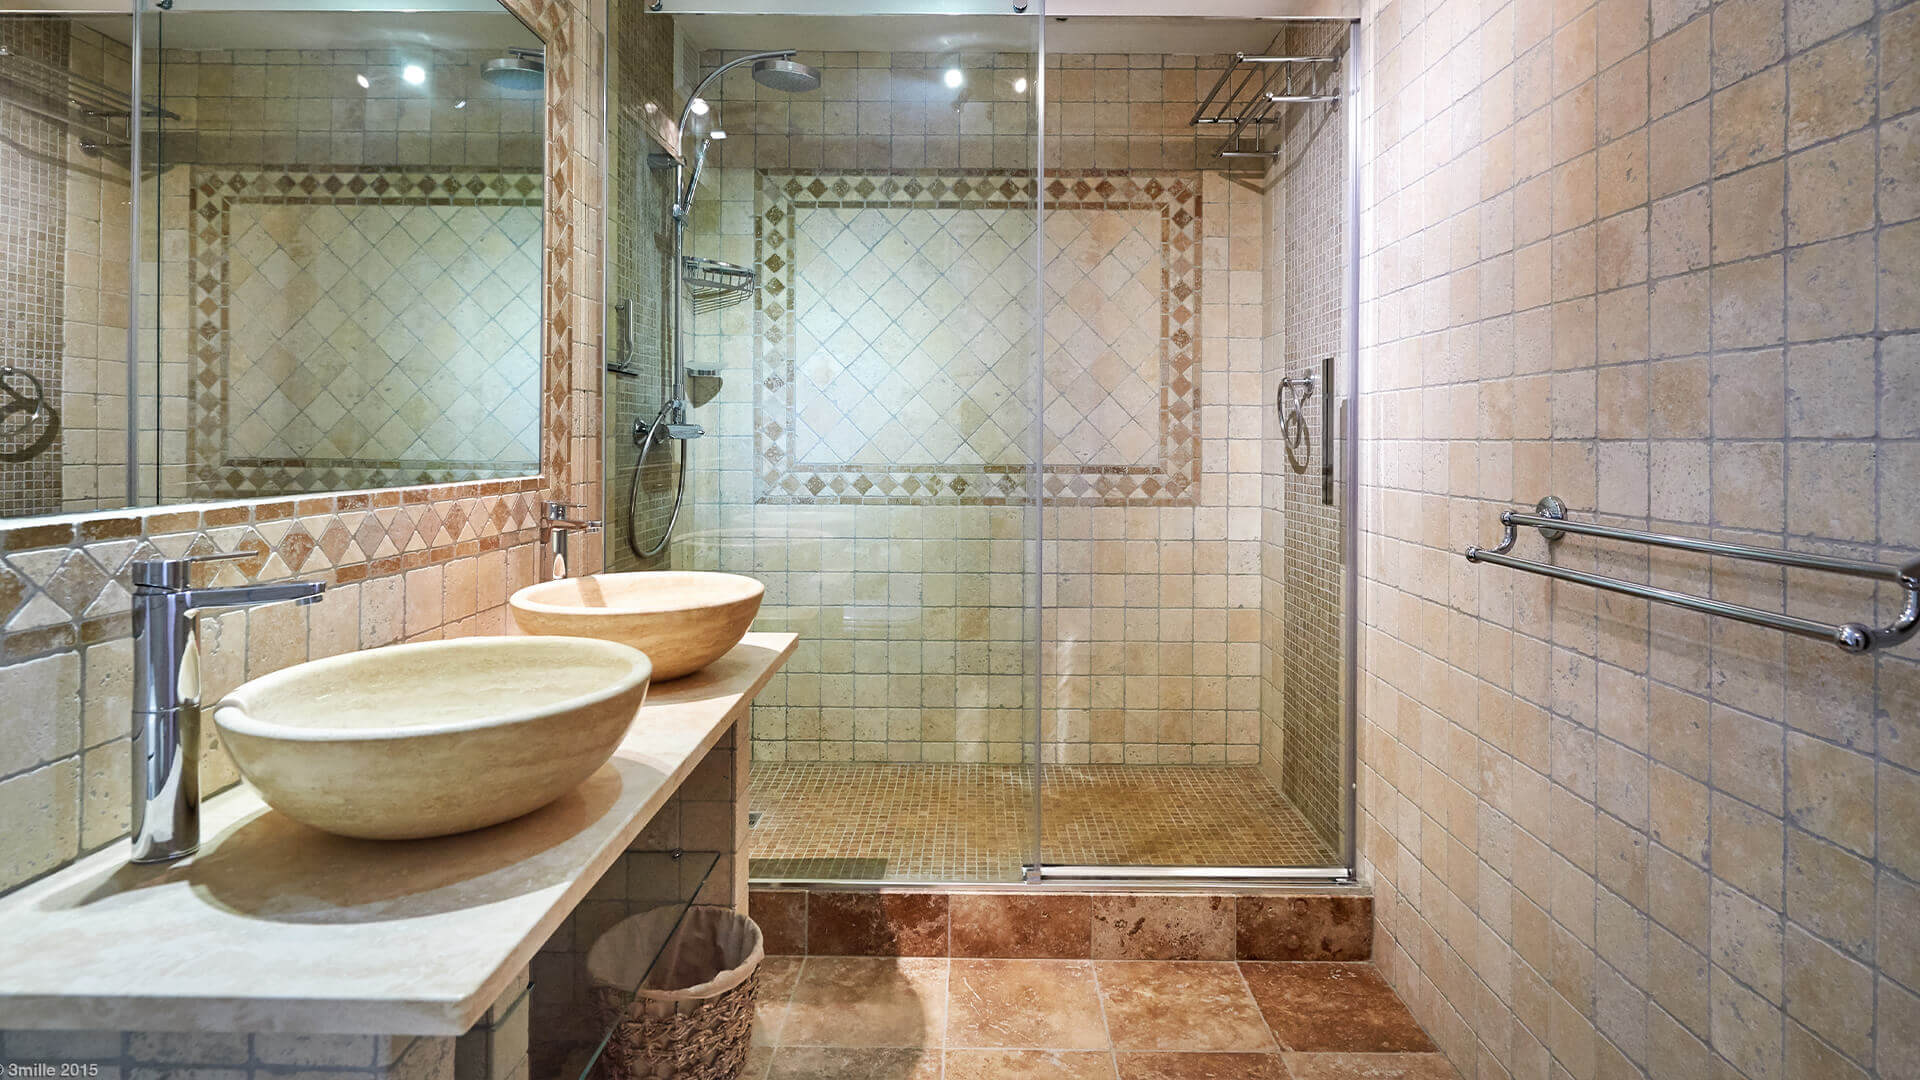 Bastide in Mougins tiled bathroom with large shower